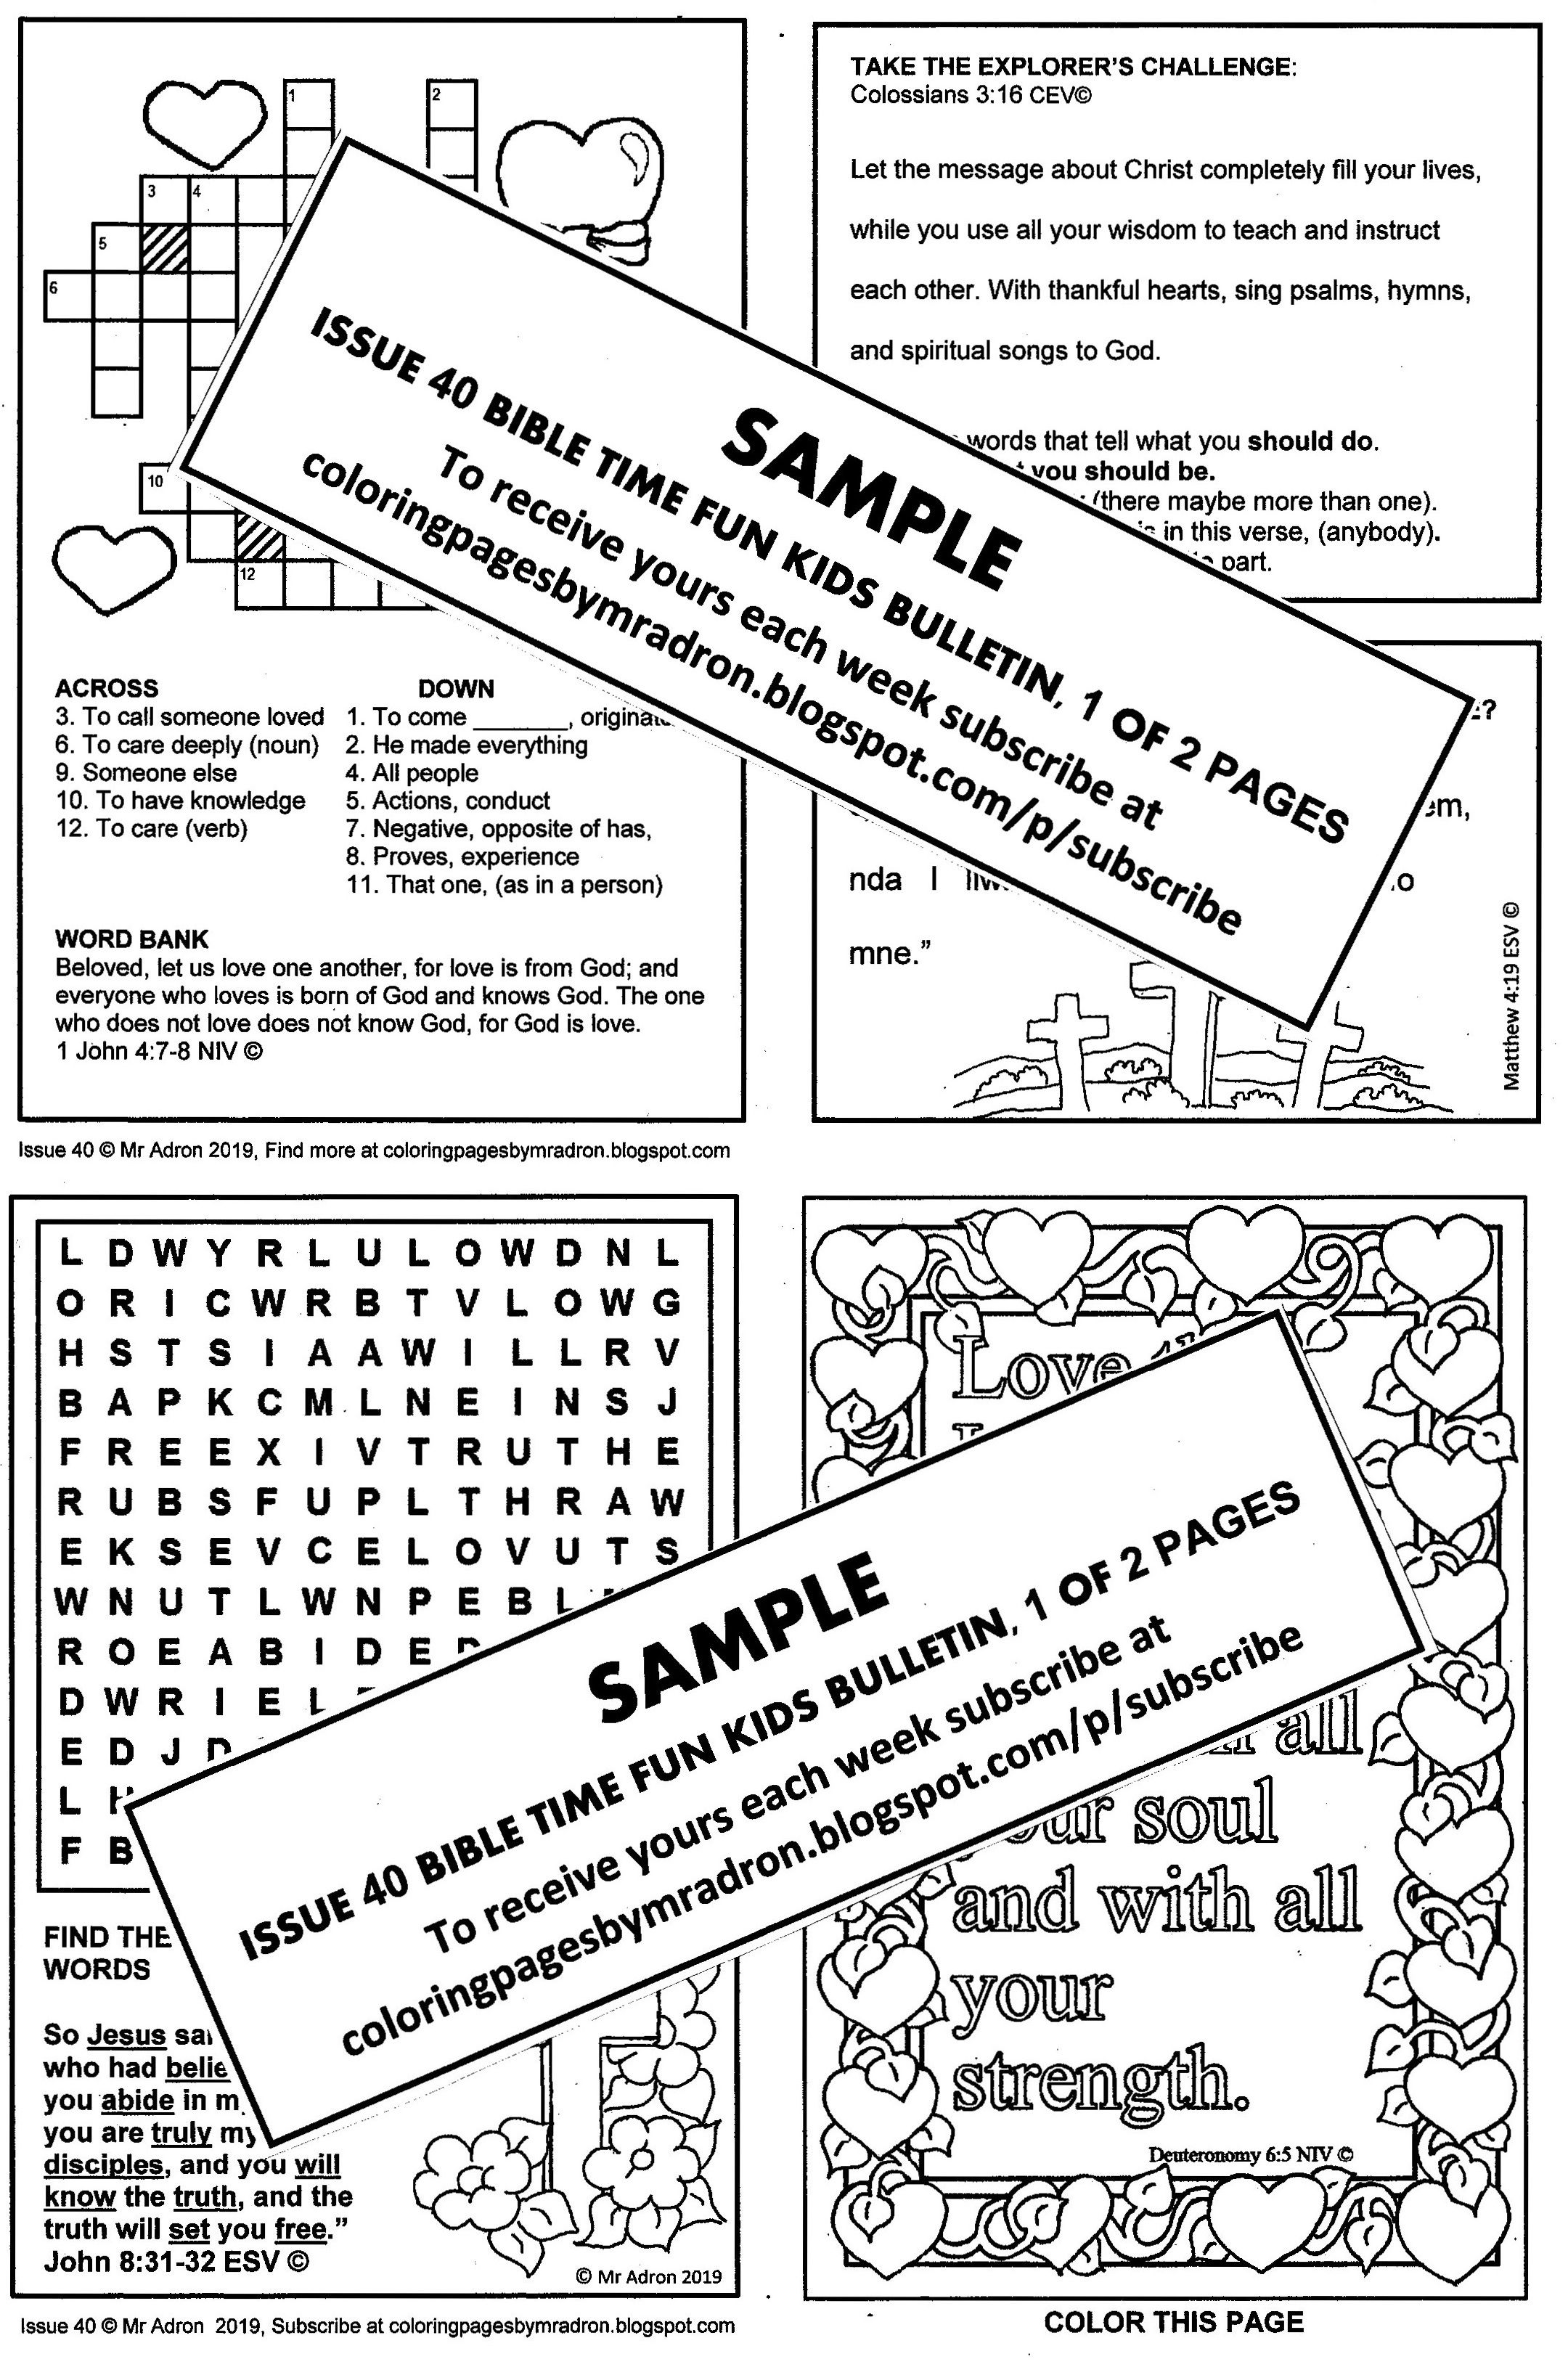 Print and distribute the kid's Bible activity bulletin. It